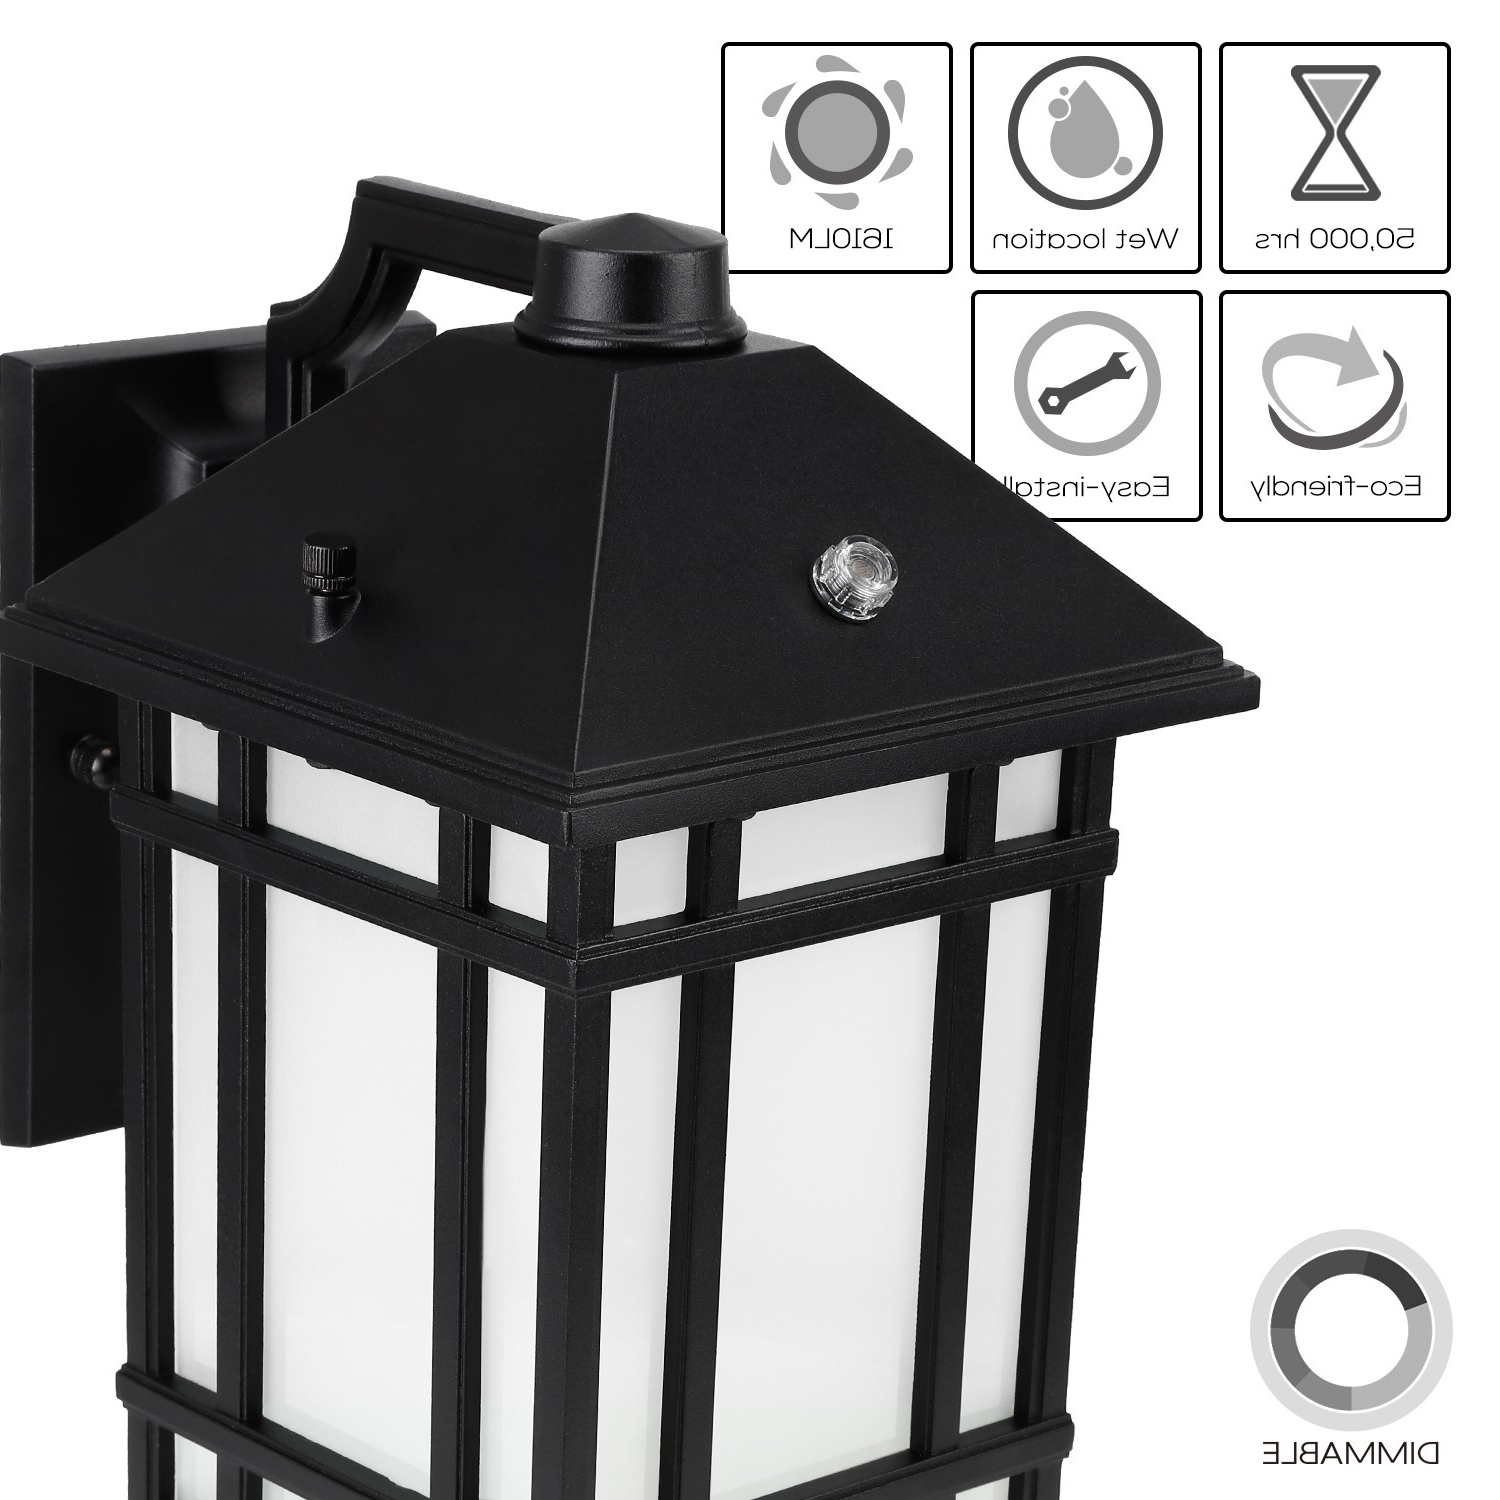 Best And Newest Led Outdoor Wall Lantern With Dusk To Dawn Photocell, 23W (130W Within Dusk To Dawn Led Outdoor Wall Lights (View 2 of 20)